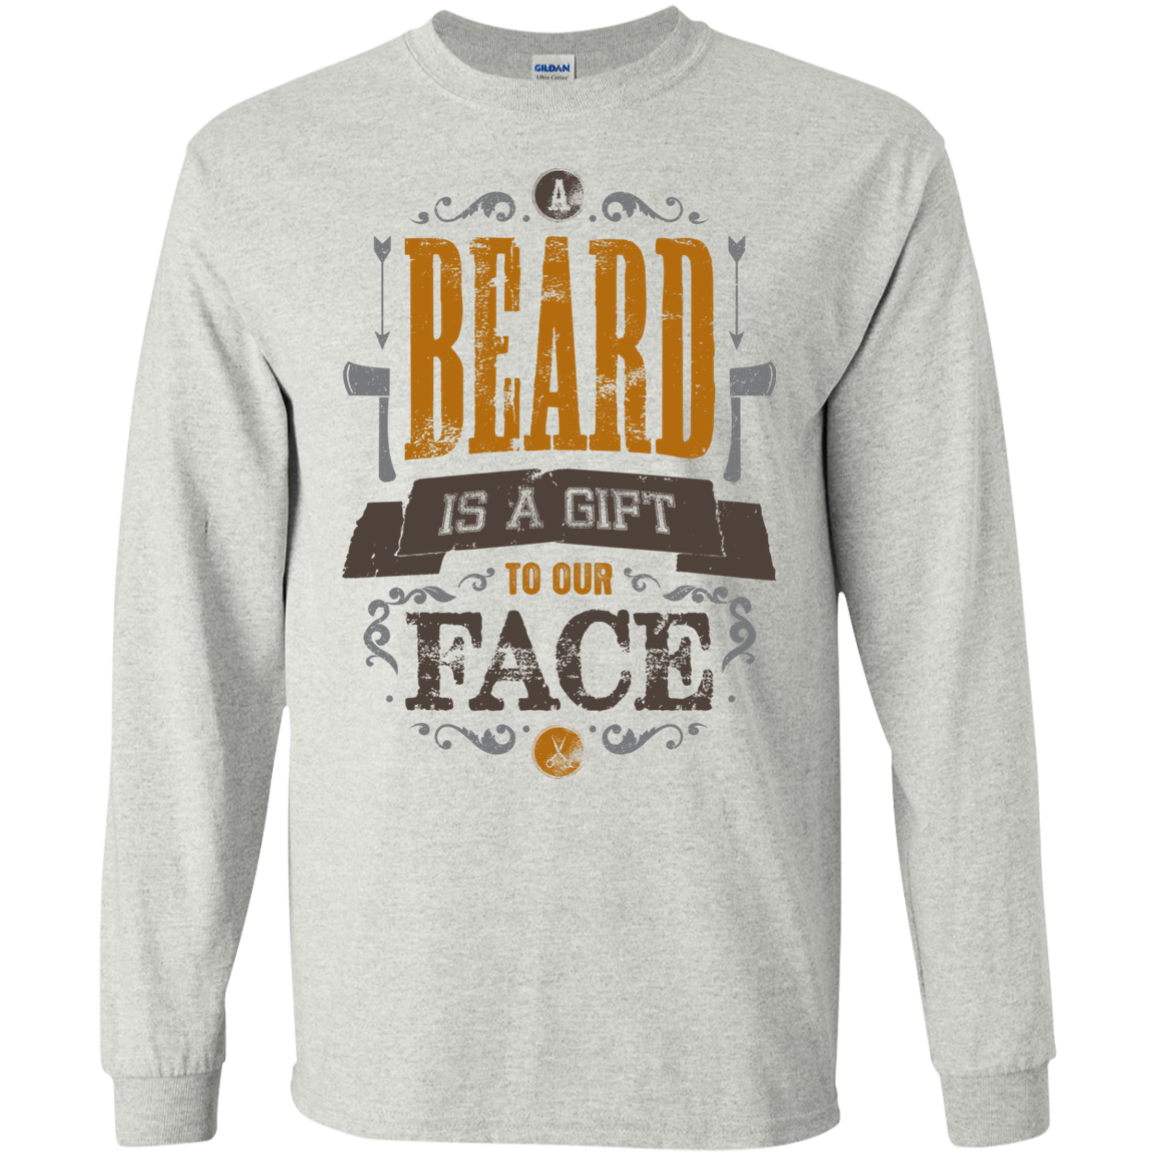 A BEARD IS A GIFT TO OUR FACE T-Shirt Hoodie Long sleeve Sweatshirt - The Sun Cat